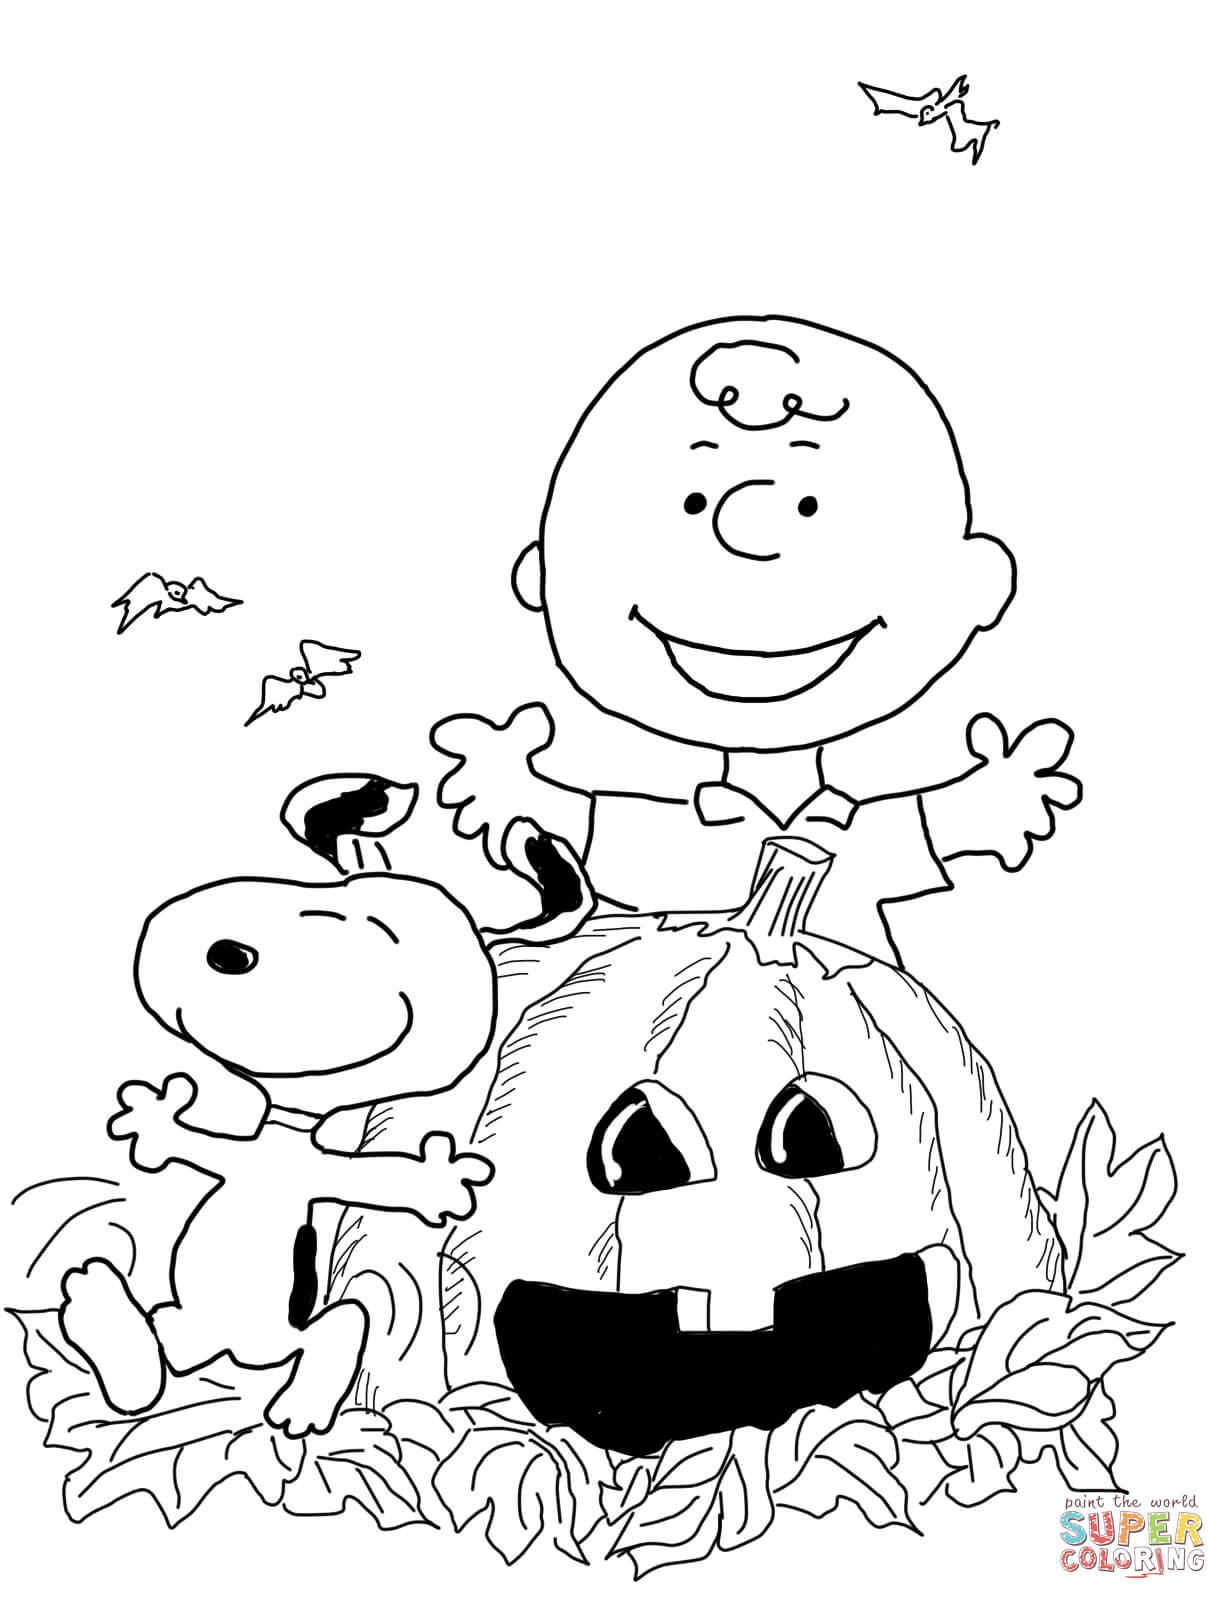 Free Printable Halloween Coloring Page Charlie Brown Halloween Coloring Page Free Printable Coloring Pages